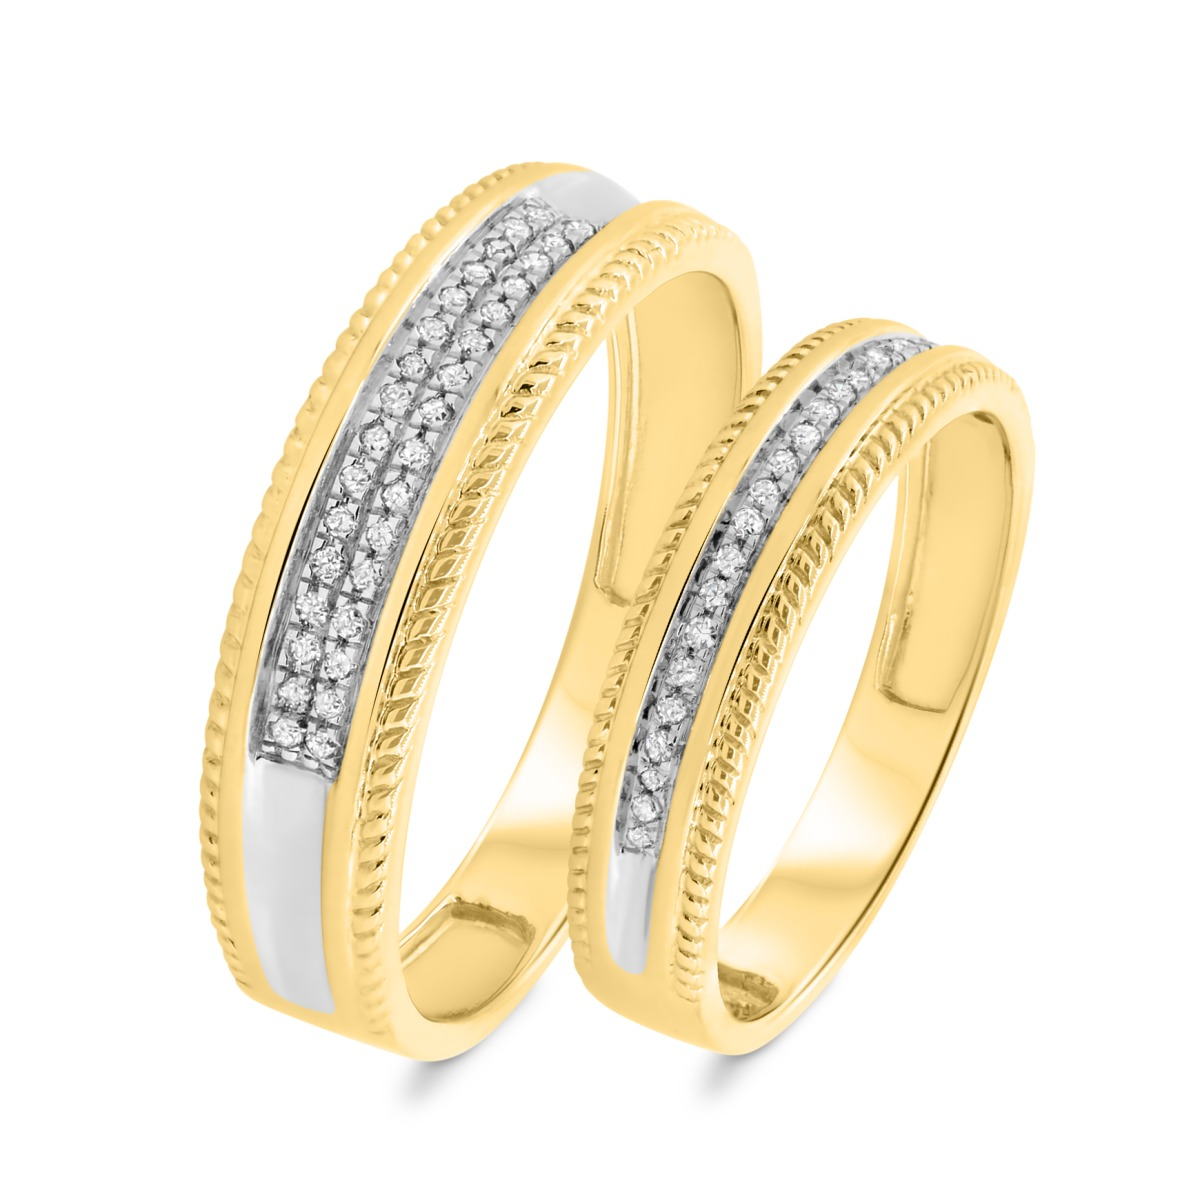 1/6 CT. T.W. Diamond Matching Wedding Band Set 10K Yellow Gold